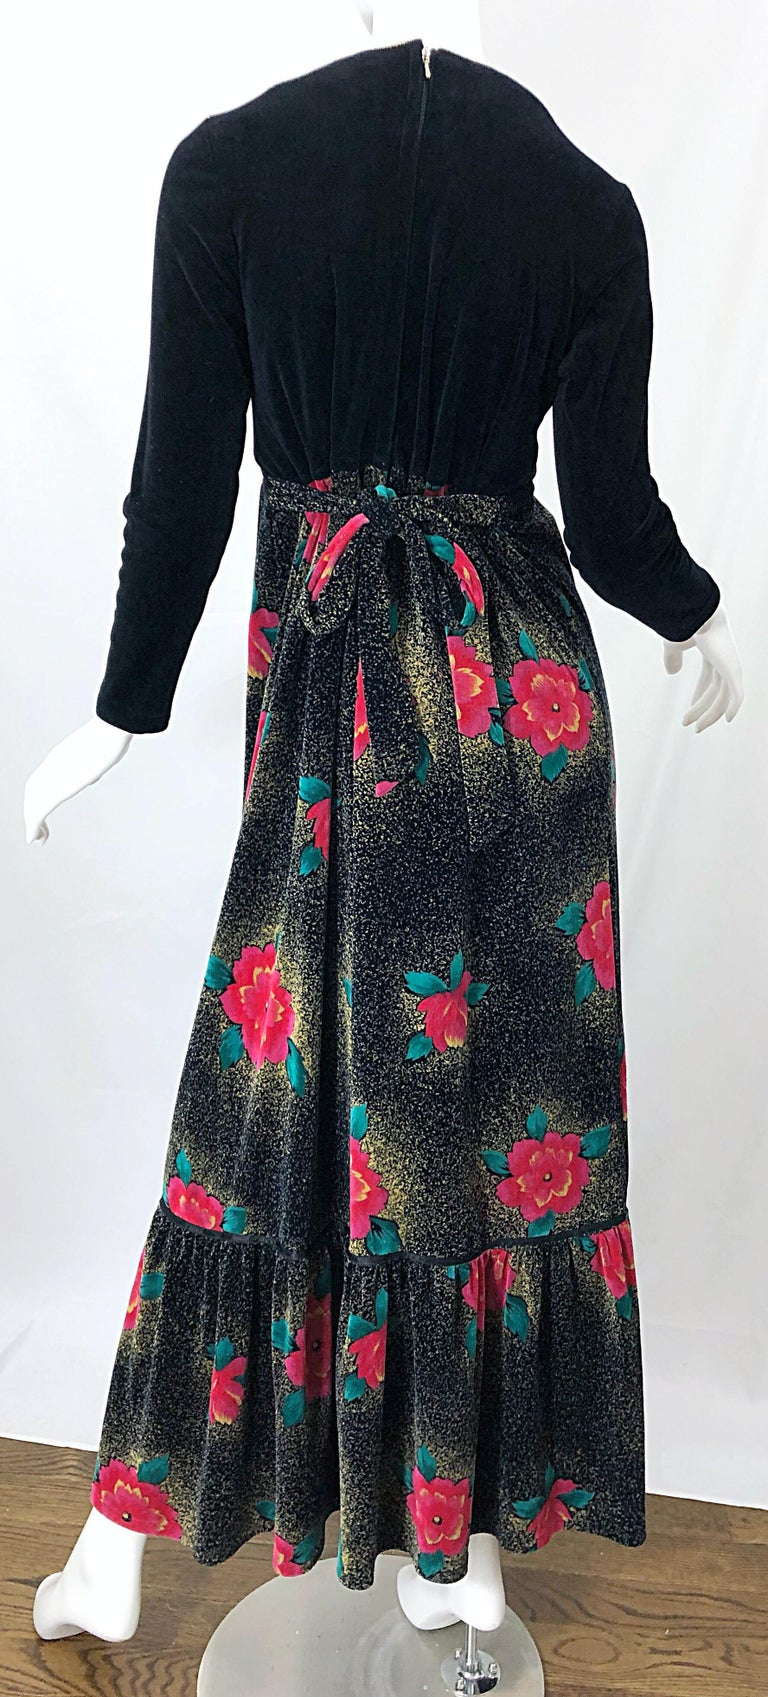 1970s Poinsettia Print Embroidered Beaded Velvet Velour Holiday Maxi Dress Gown For Sale 2